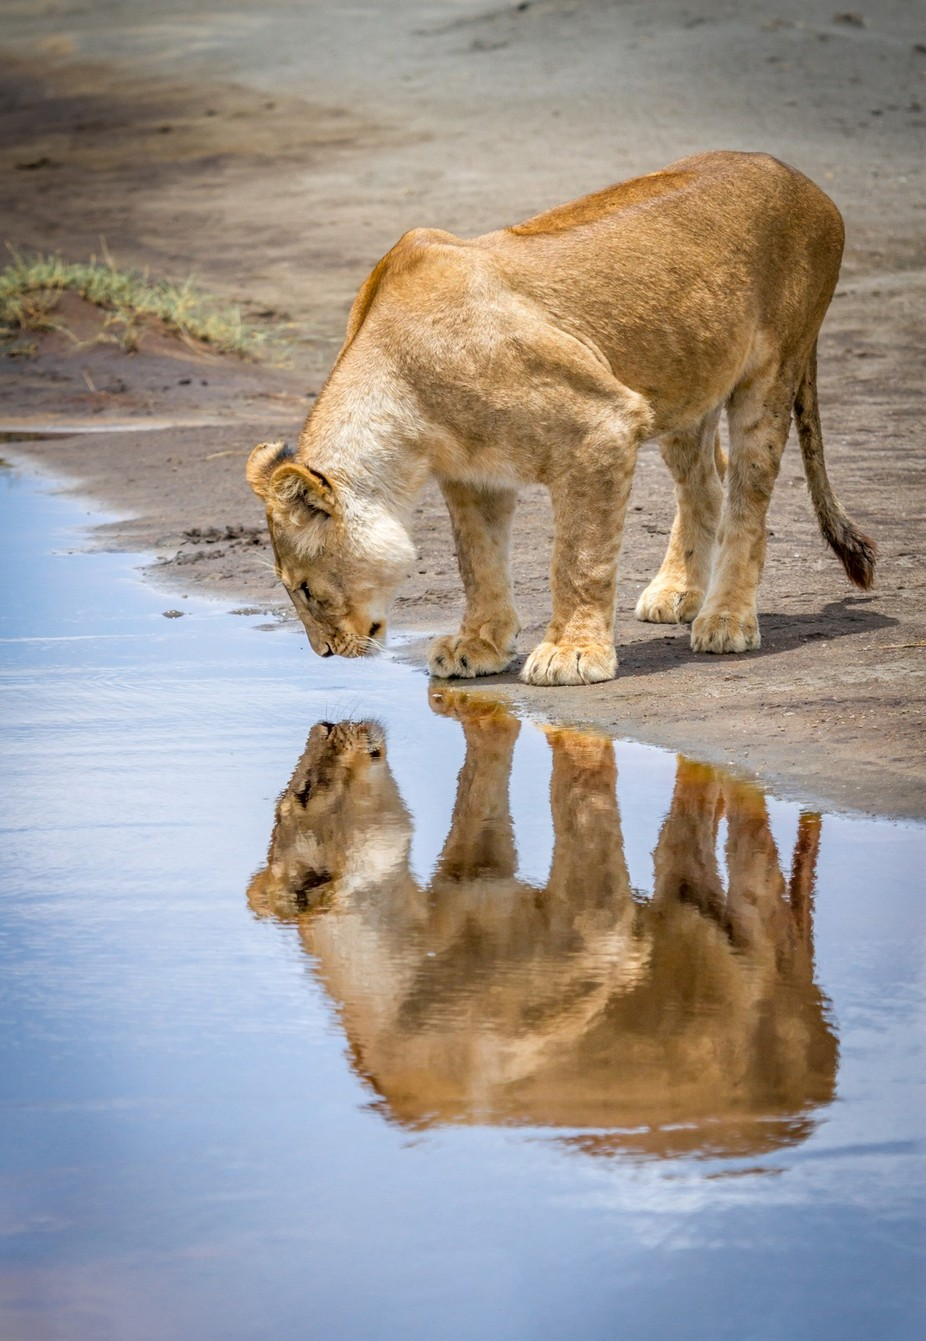 Lioness Reflection by CindiAlvarado - Explore Africa Photo Contest